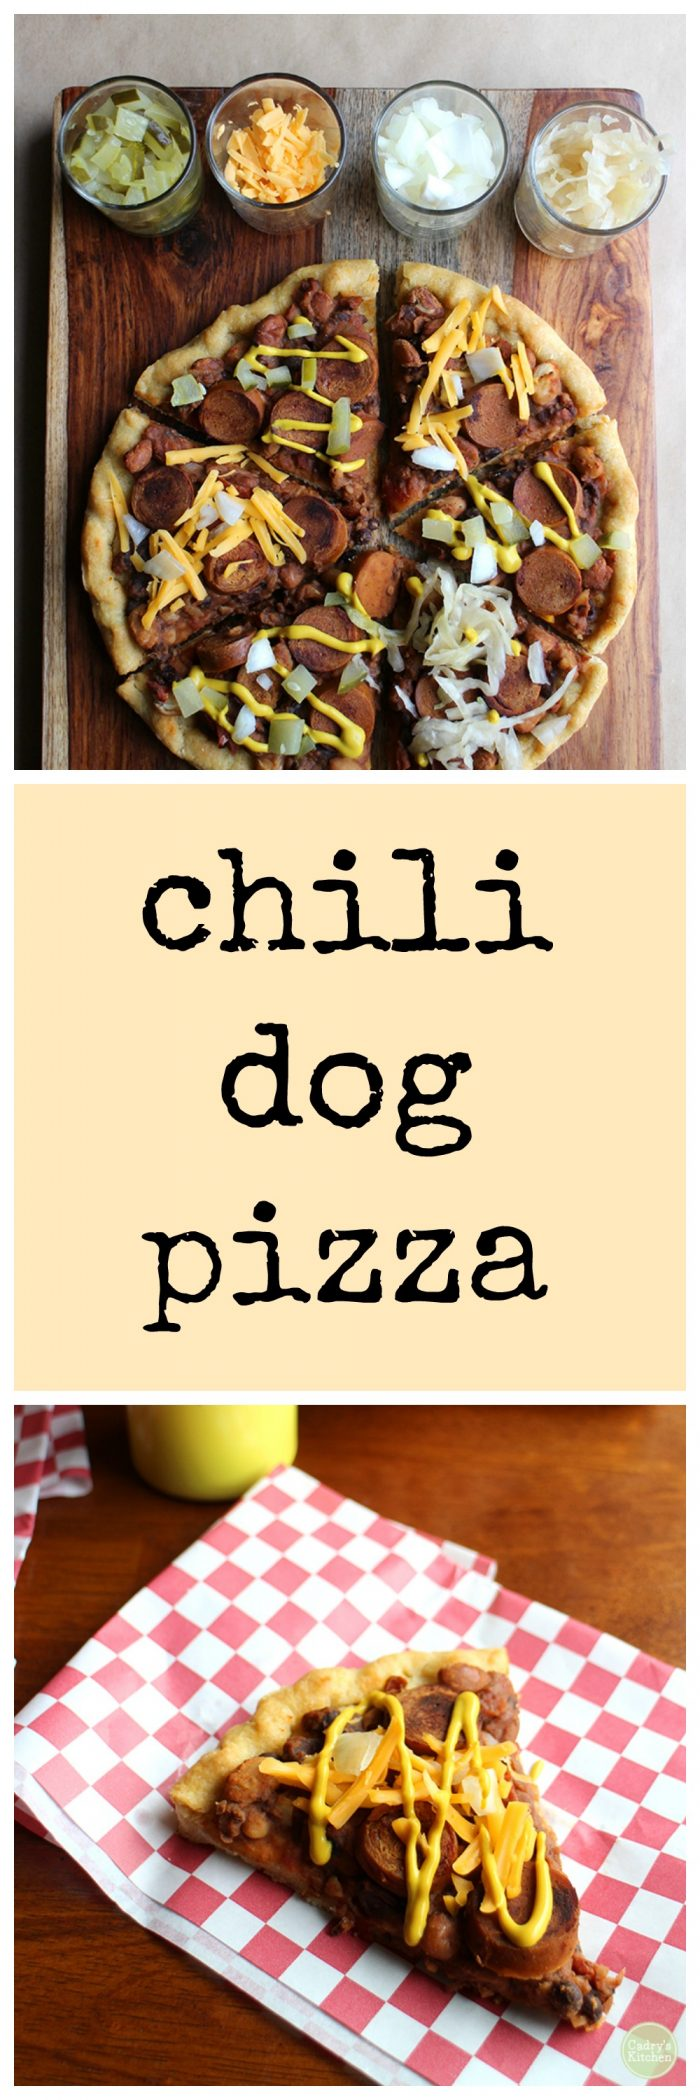 Chili dog pizza - the flavors of chili dogs and pizza, together at last! | cadryskitchen.com #vegan